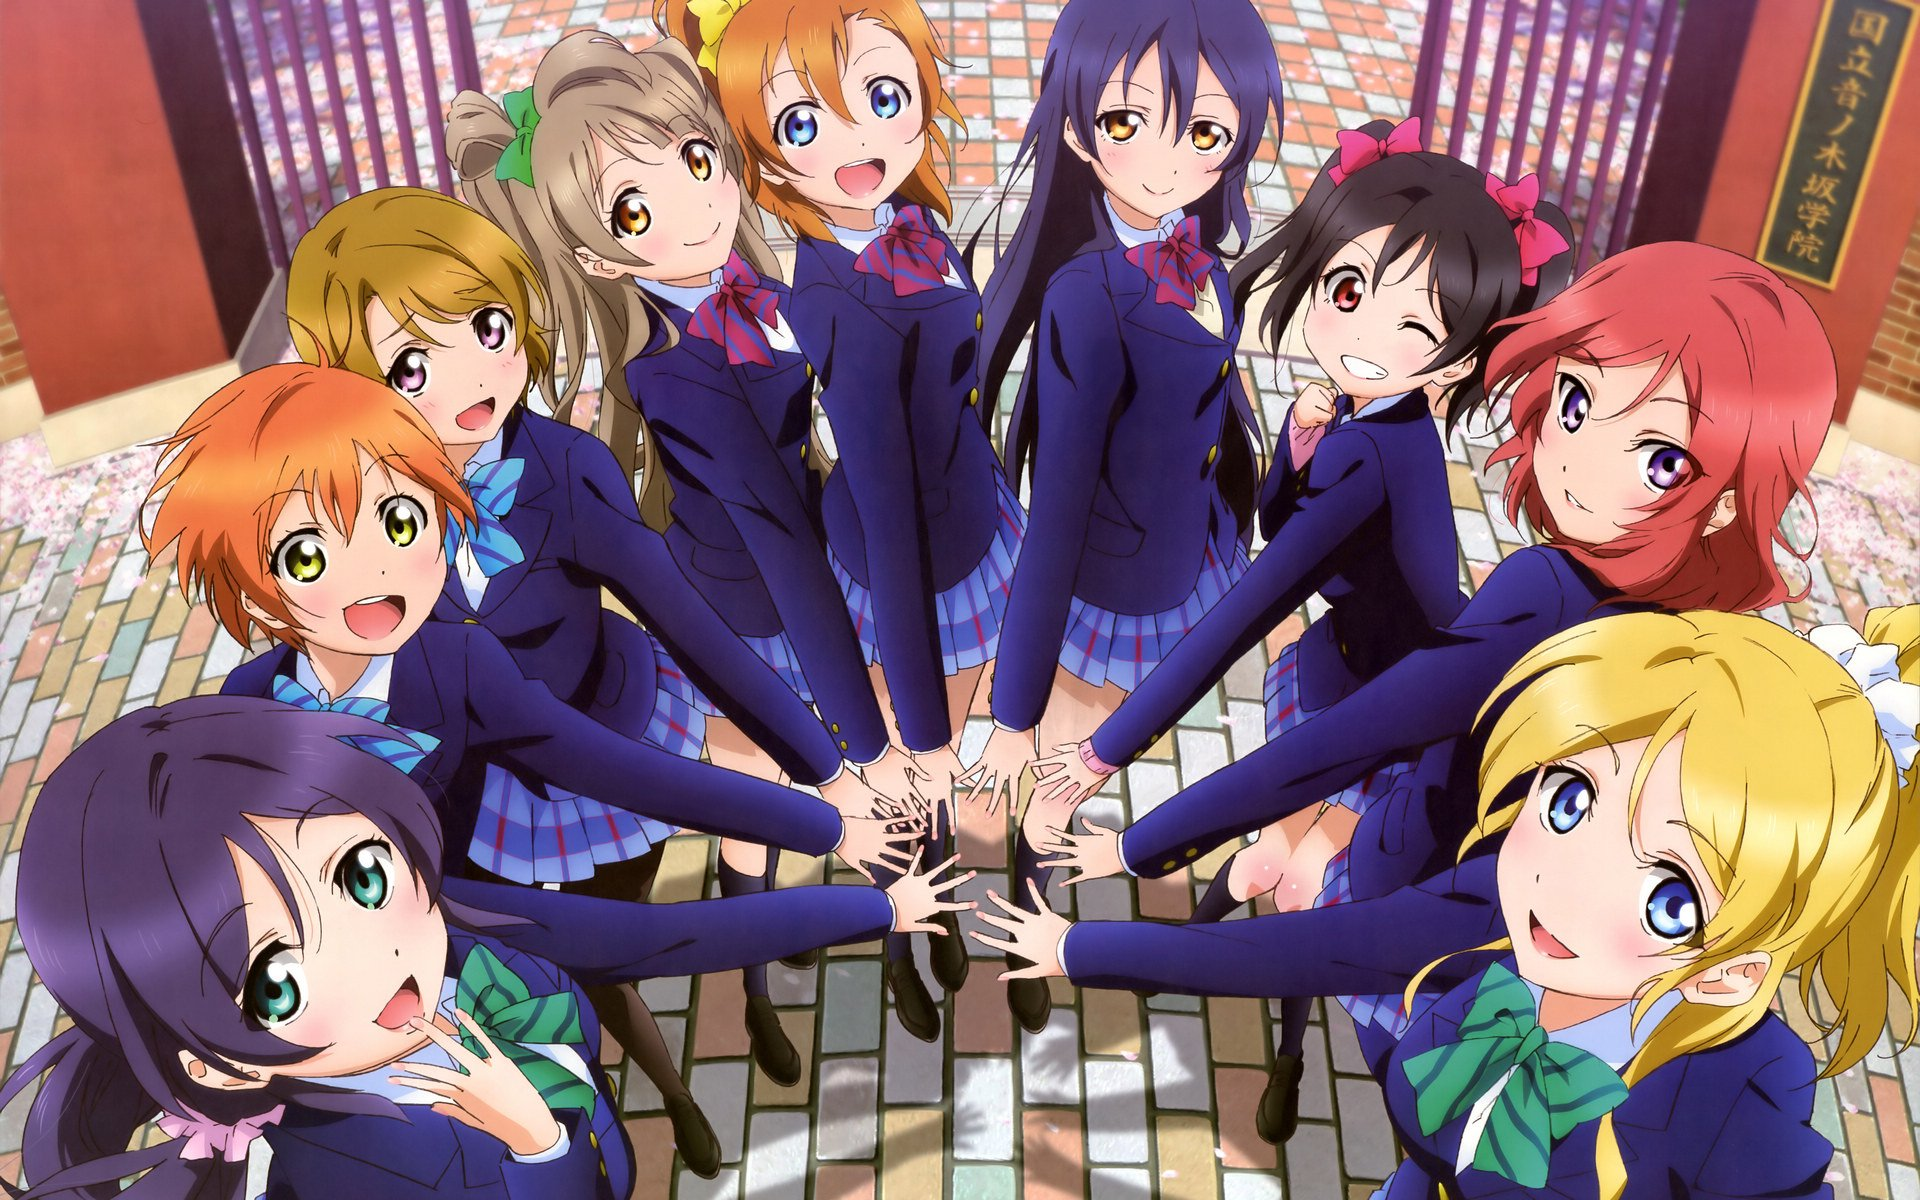 Anime series love live A wallpaper 1920x1200 505102 ...